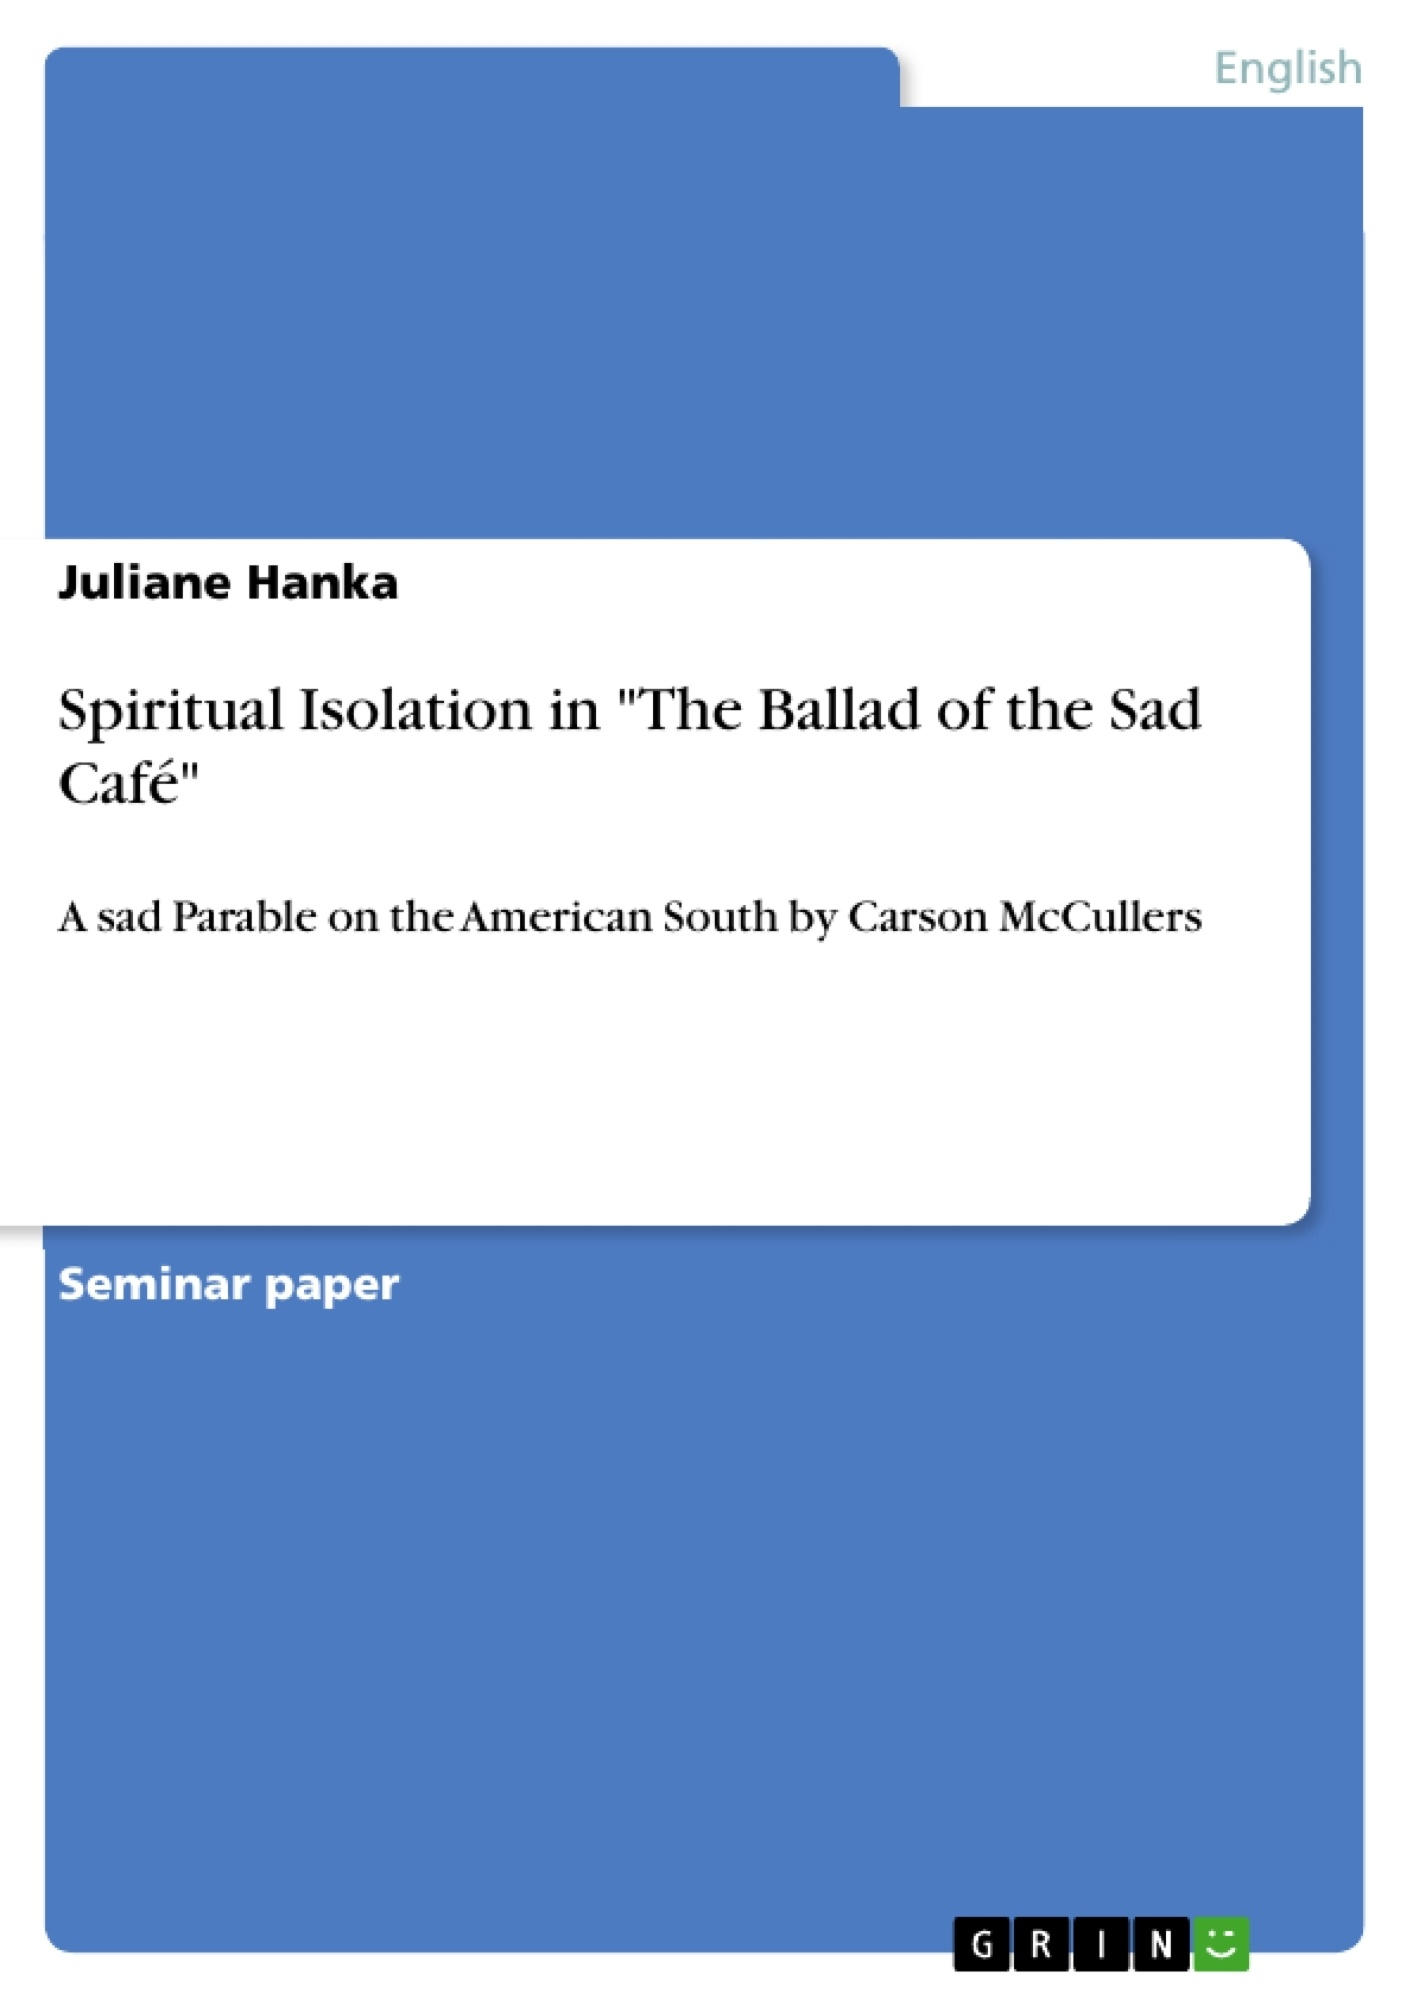 The Ballad of the Sad Cafe Literary Elements